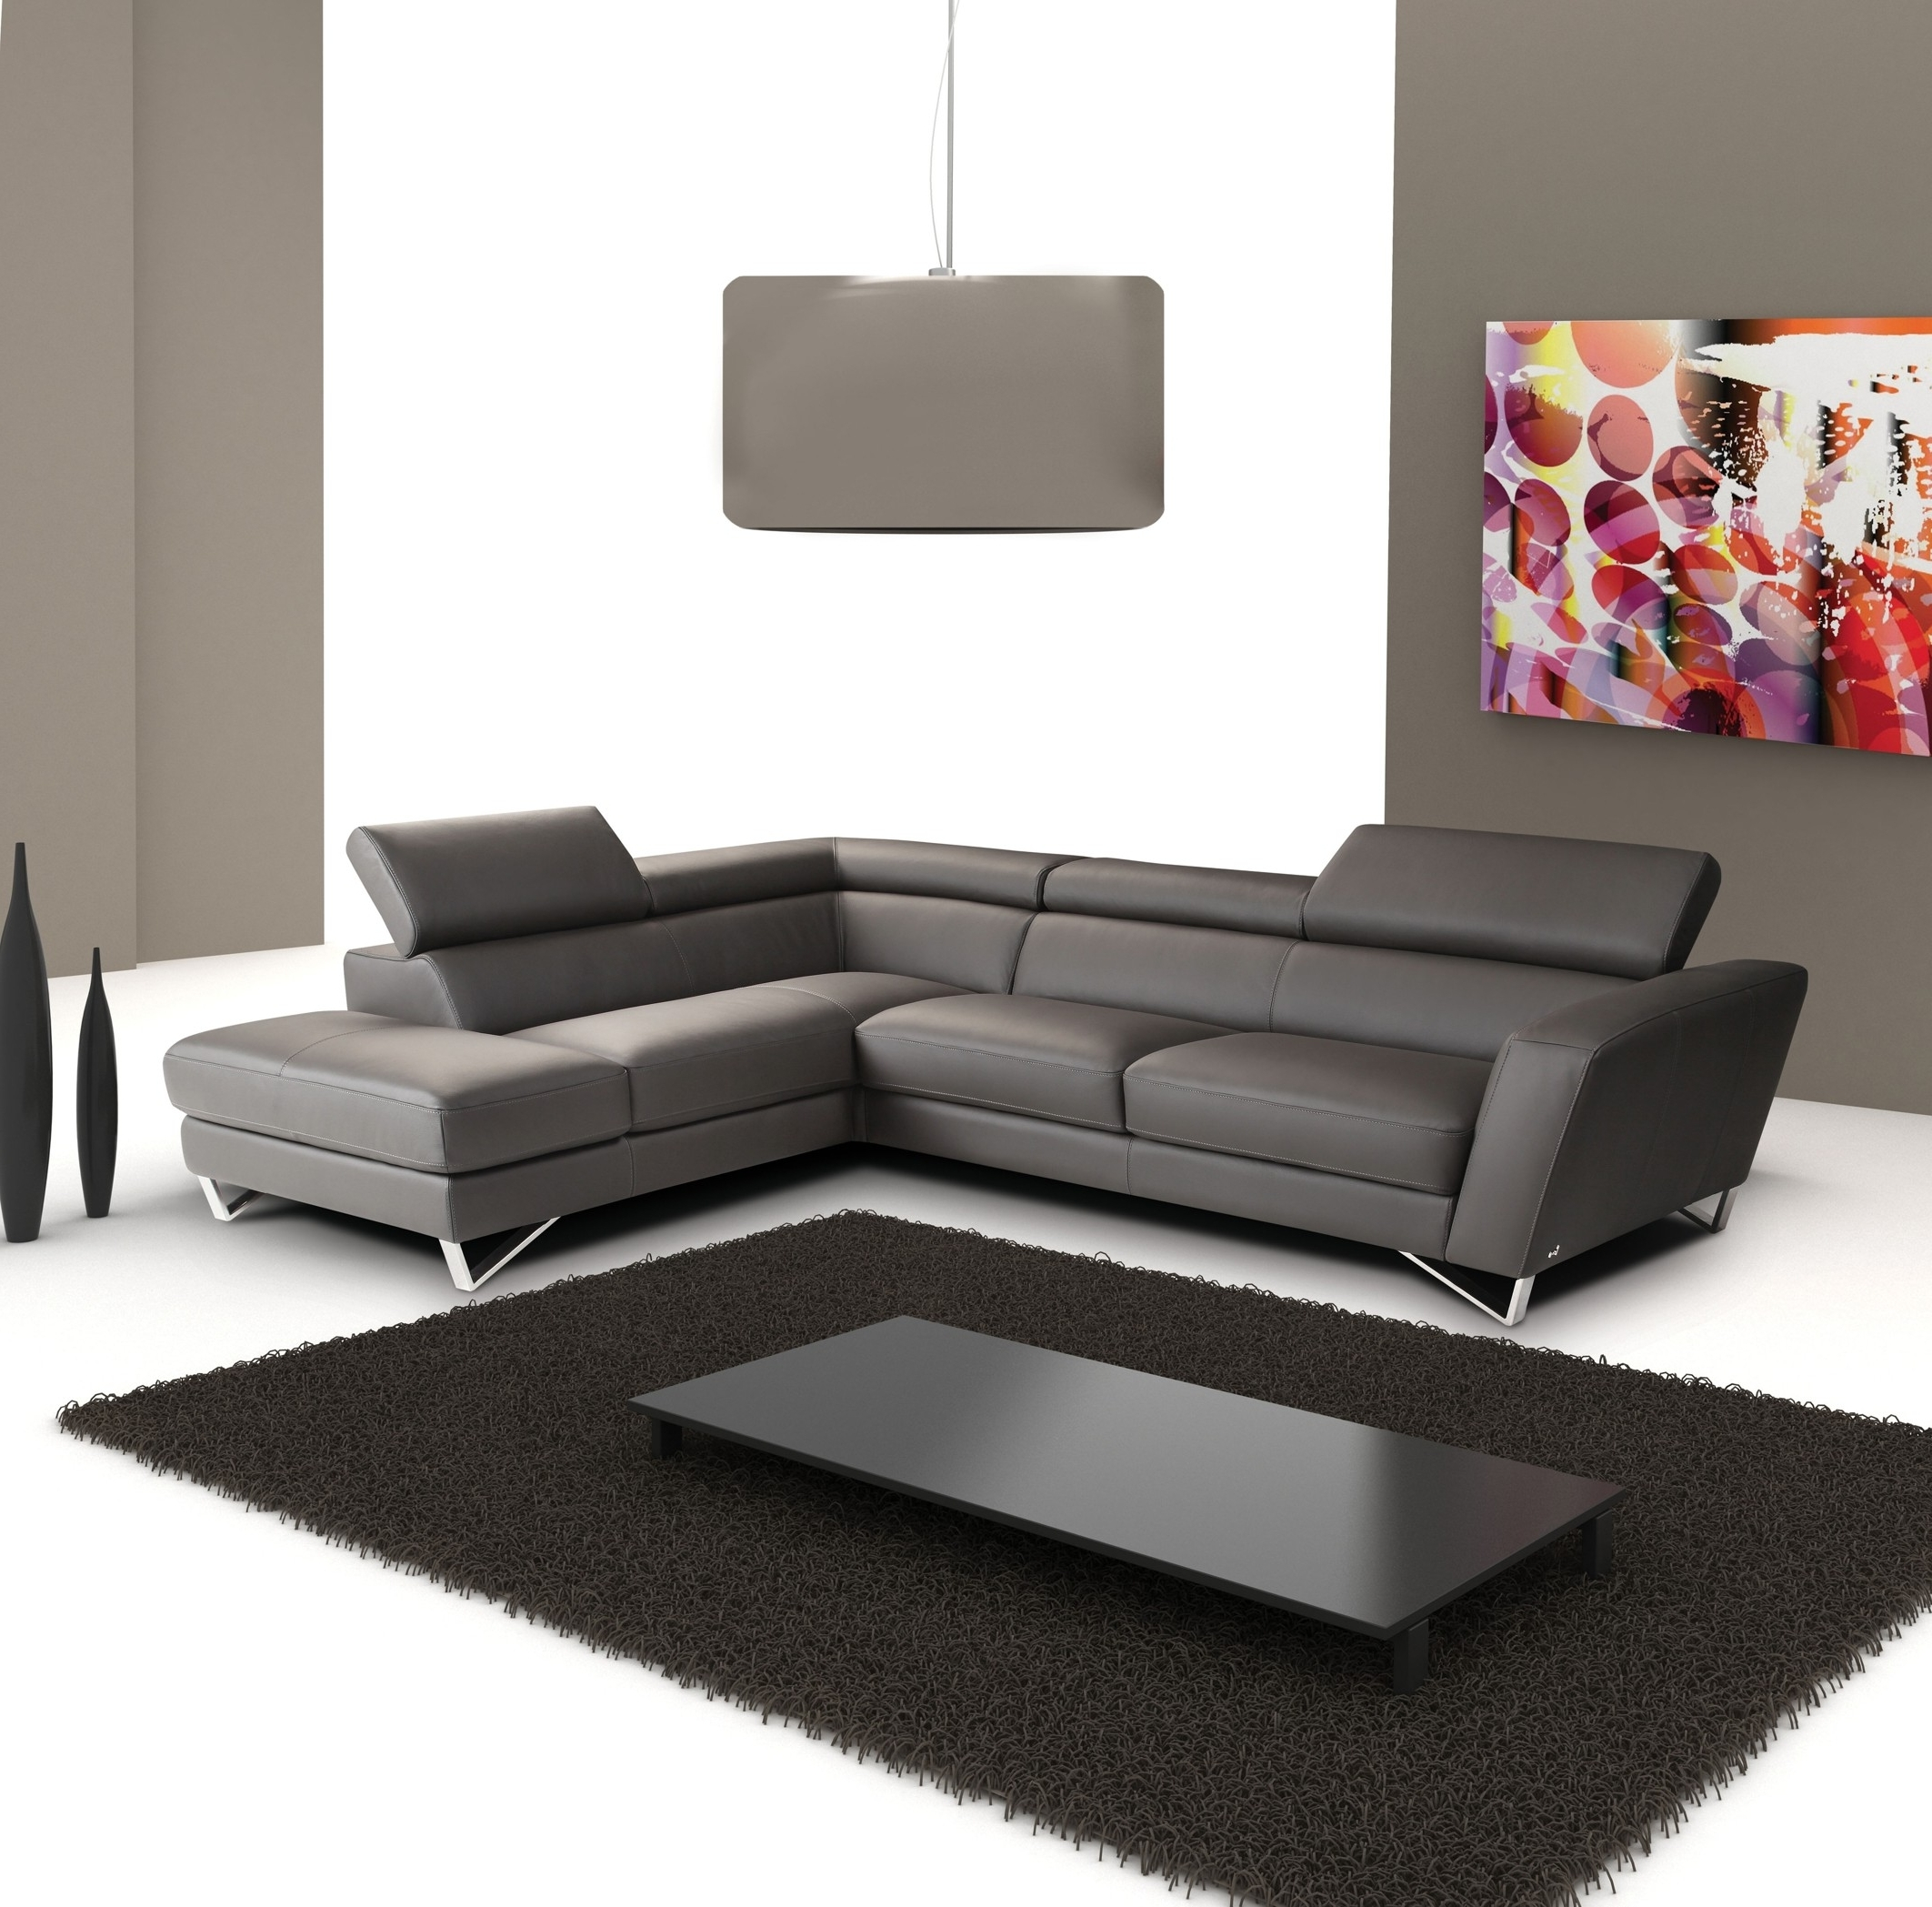 2019 Sectional Sofas At Bc Canada Inside Sectional Modern Sofa Interior White Button Leather Furniture (View 2 of 20)